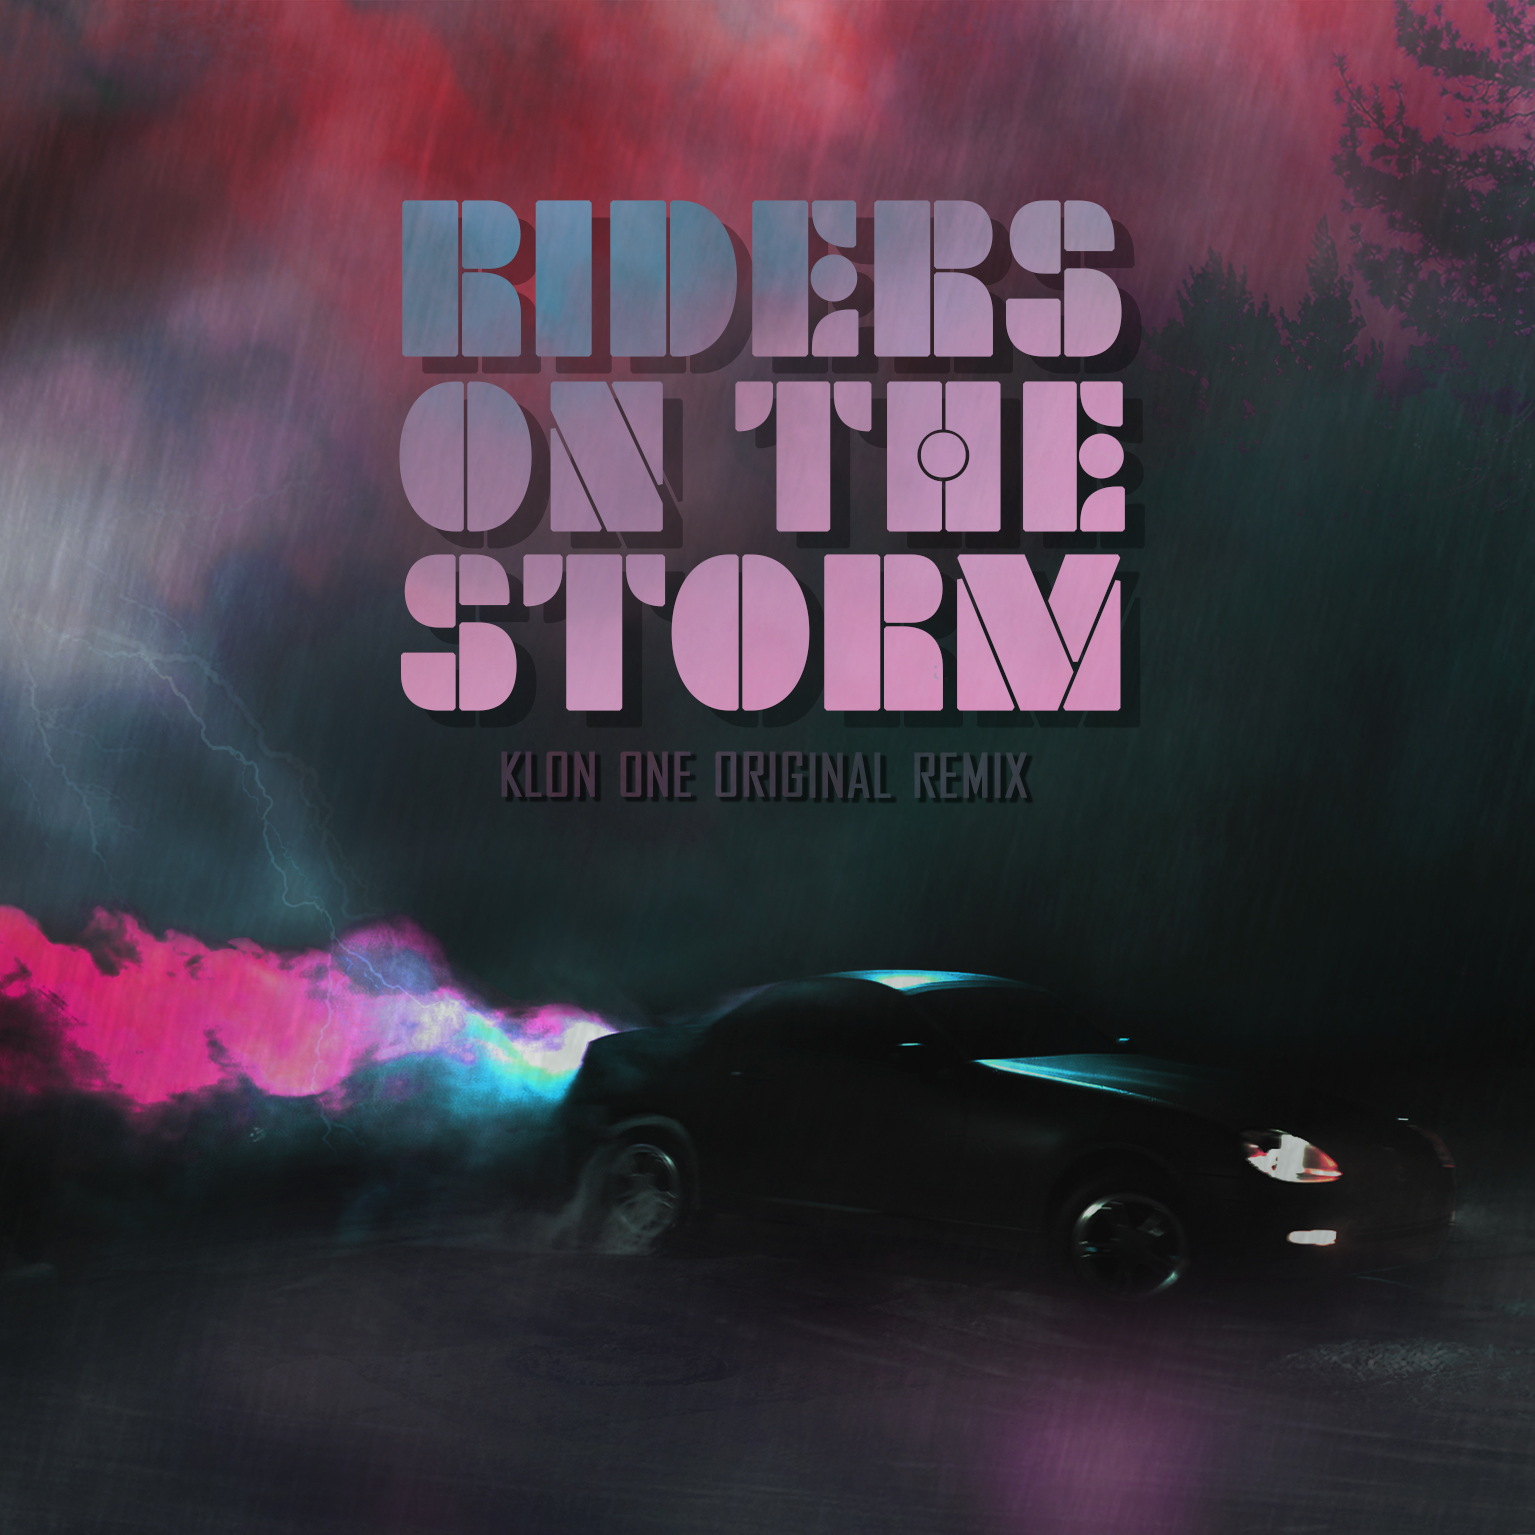 RIDERS ON THE STORMS